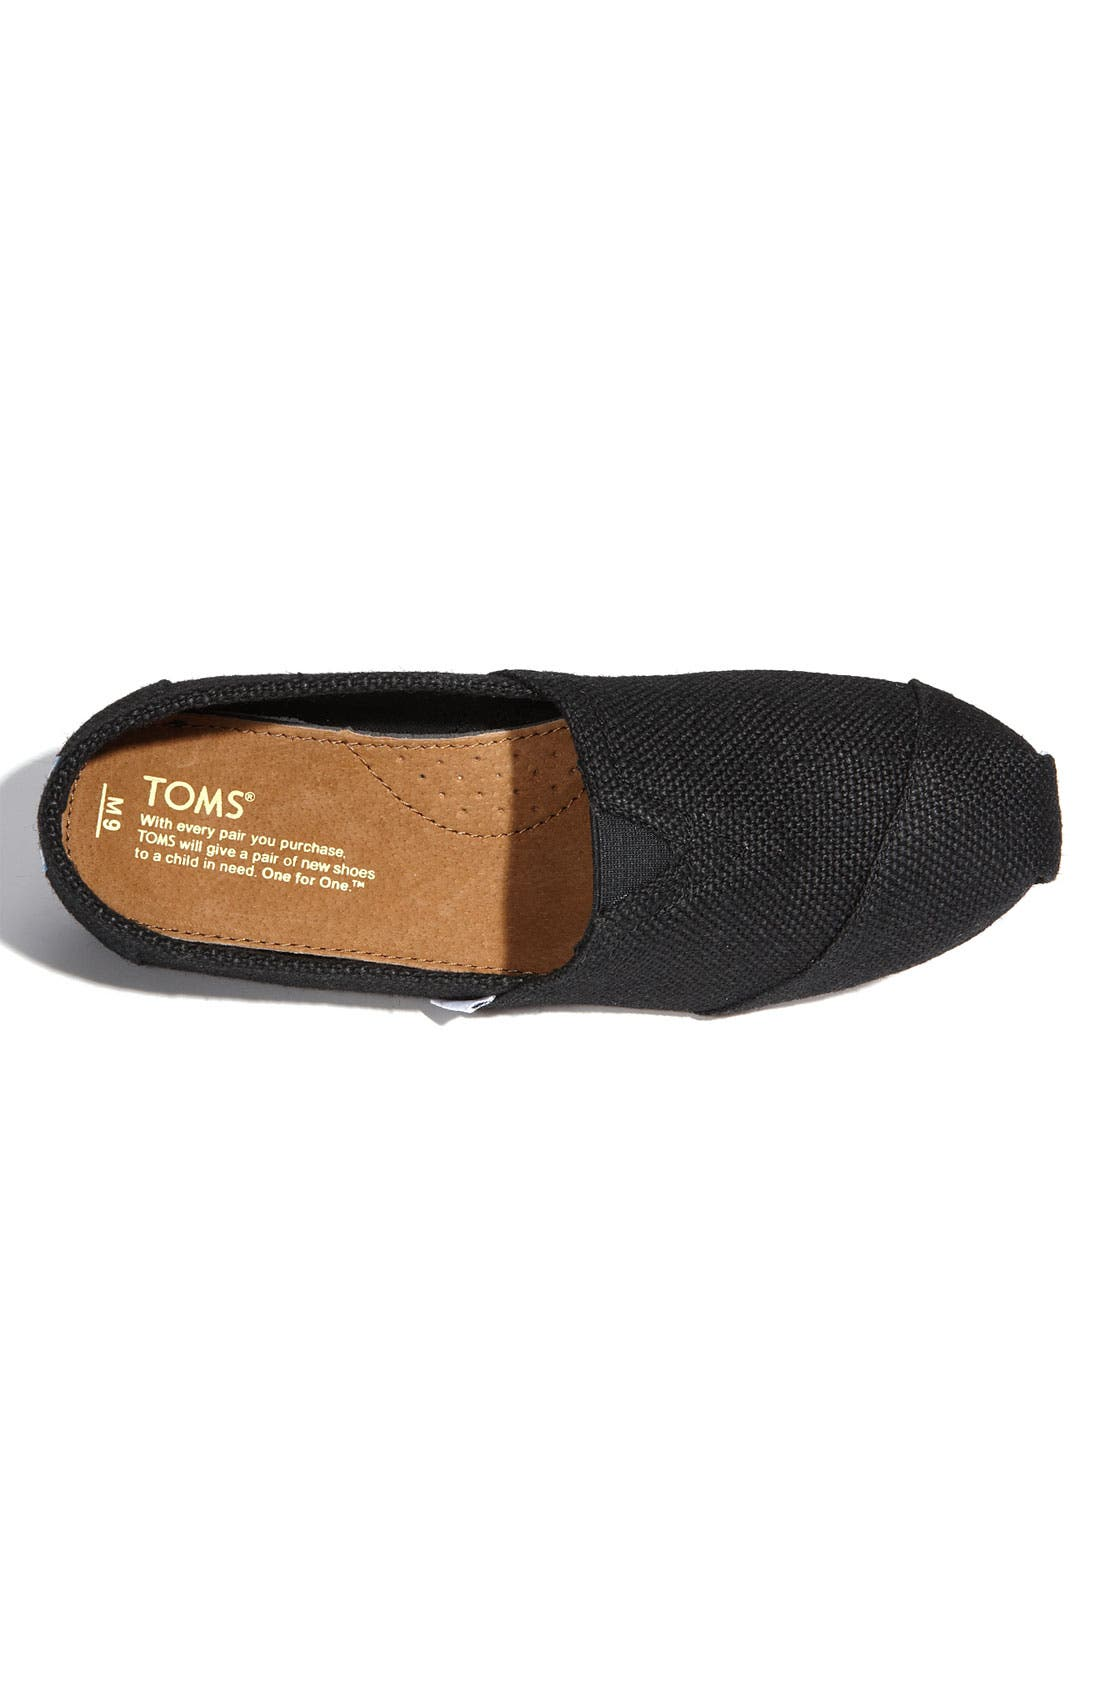 Alternate Image 3  - TOMS 'Classic' Burlap Slip-On   (Men)